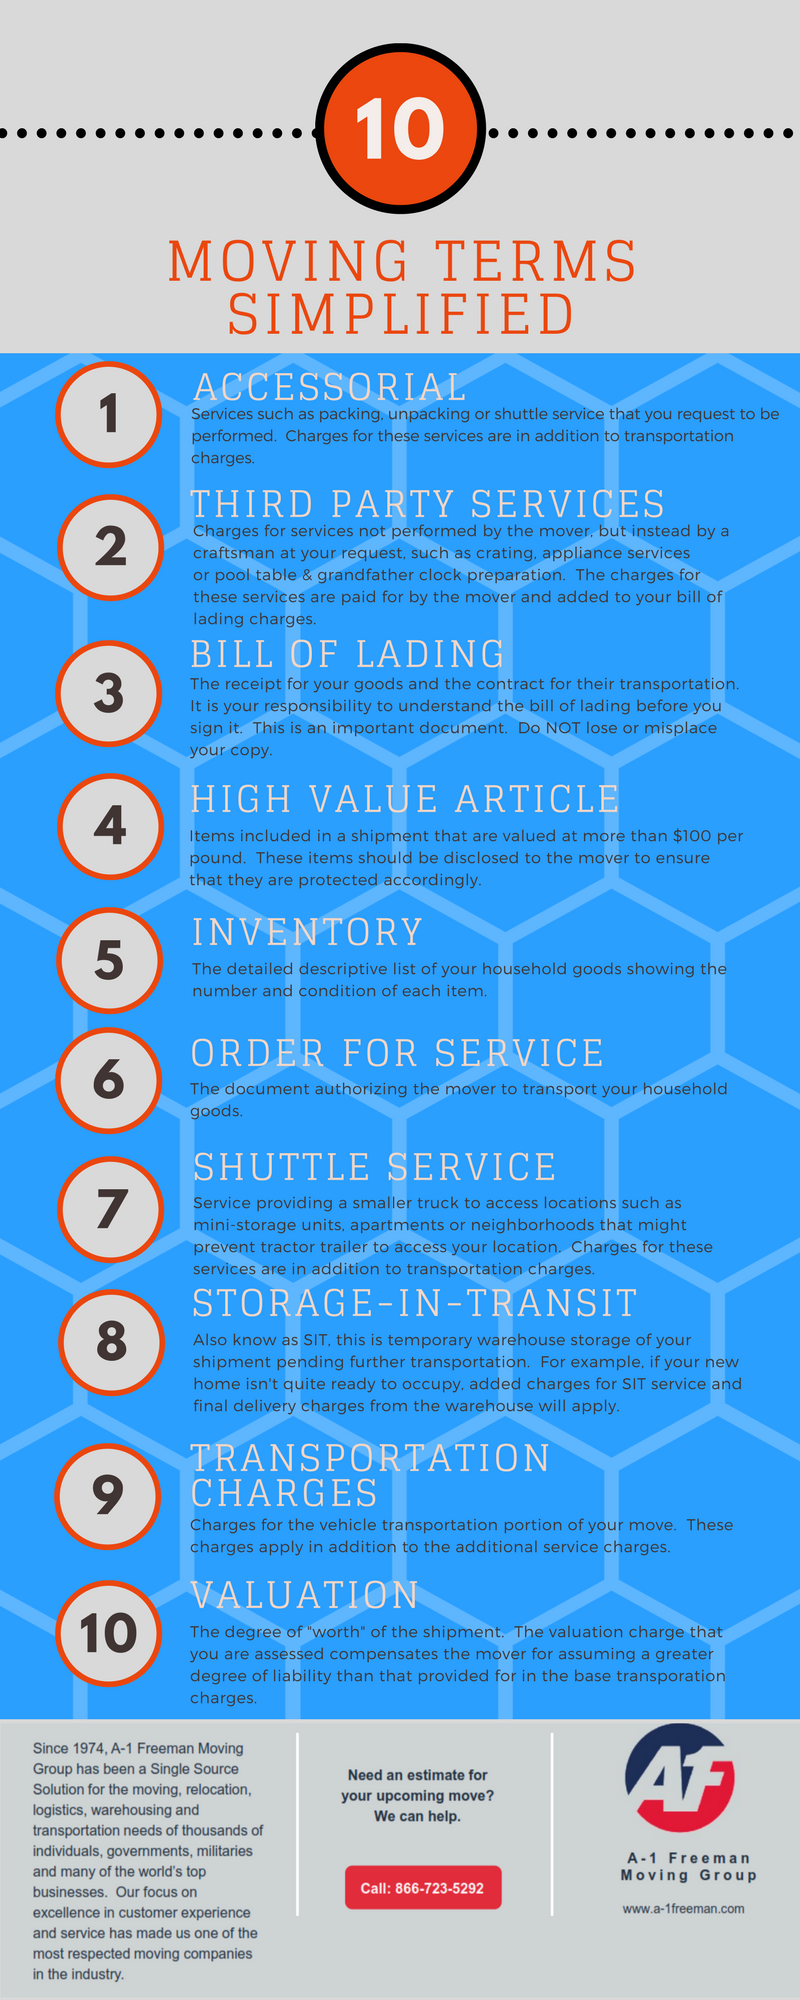 A-1 Freeman Moving Group Houston Moving Terms Infographic